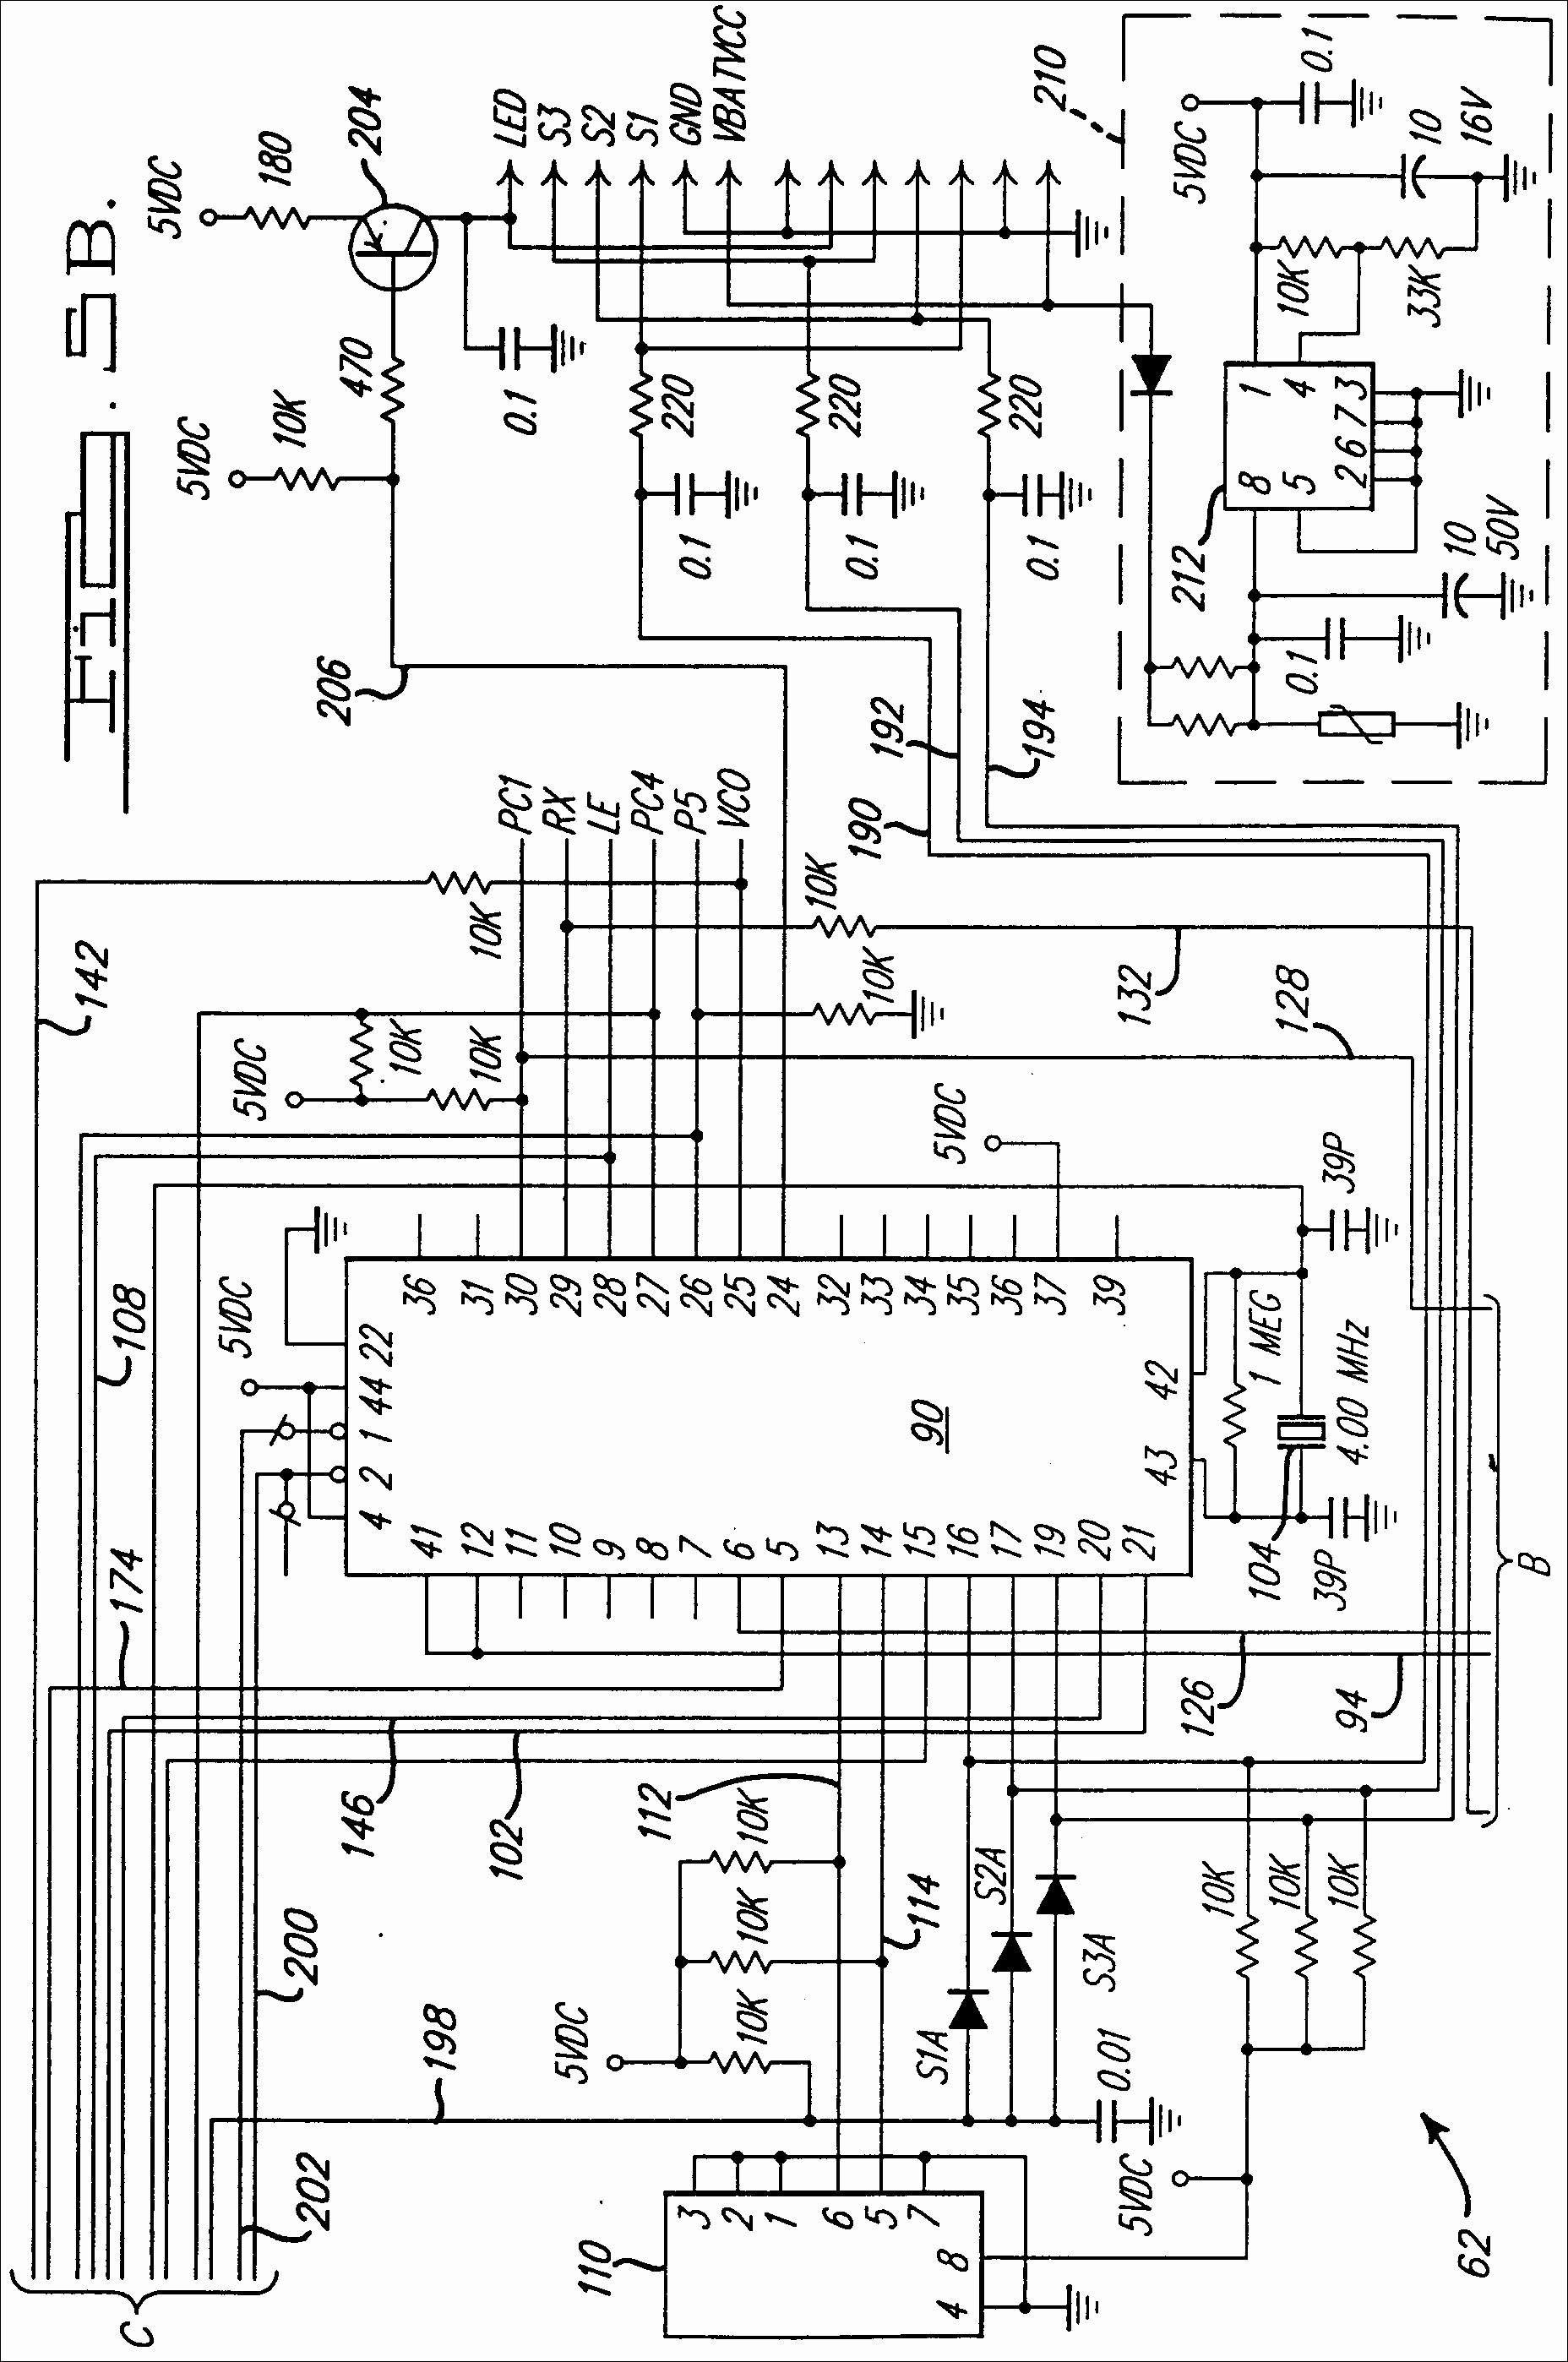 Craftsman Garage Door Wiring Diagram from wholefoodsonabudget.com